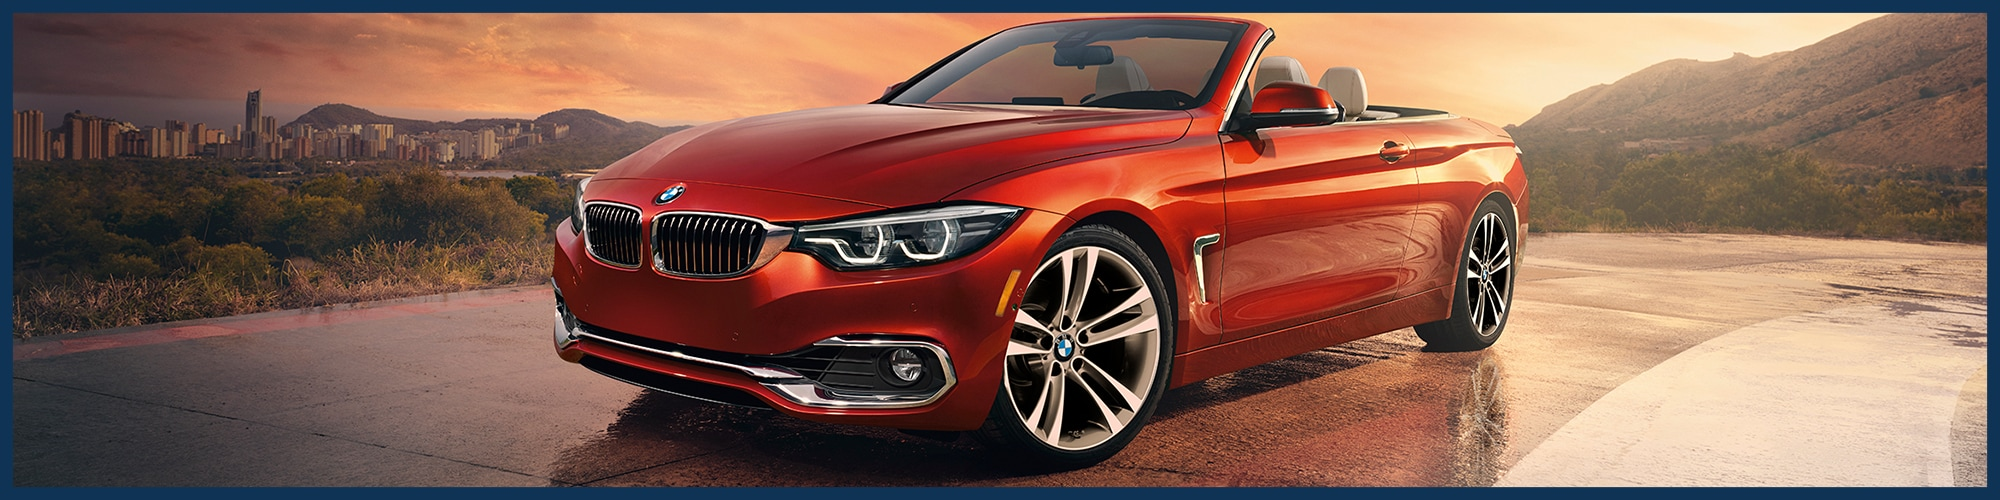 7bf1d37682b 2018 BMW 4 Series in Lake Bluff - Karl Knauz BMW, Local BMW dealership